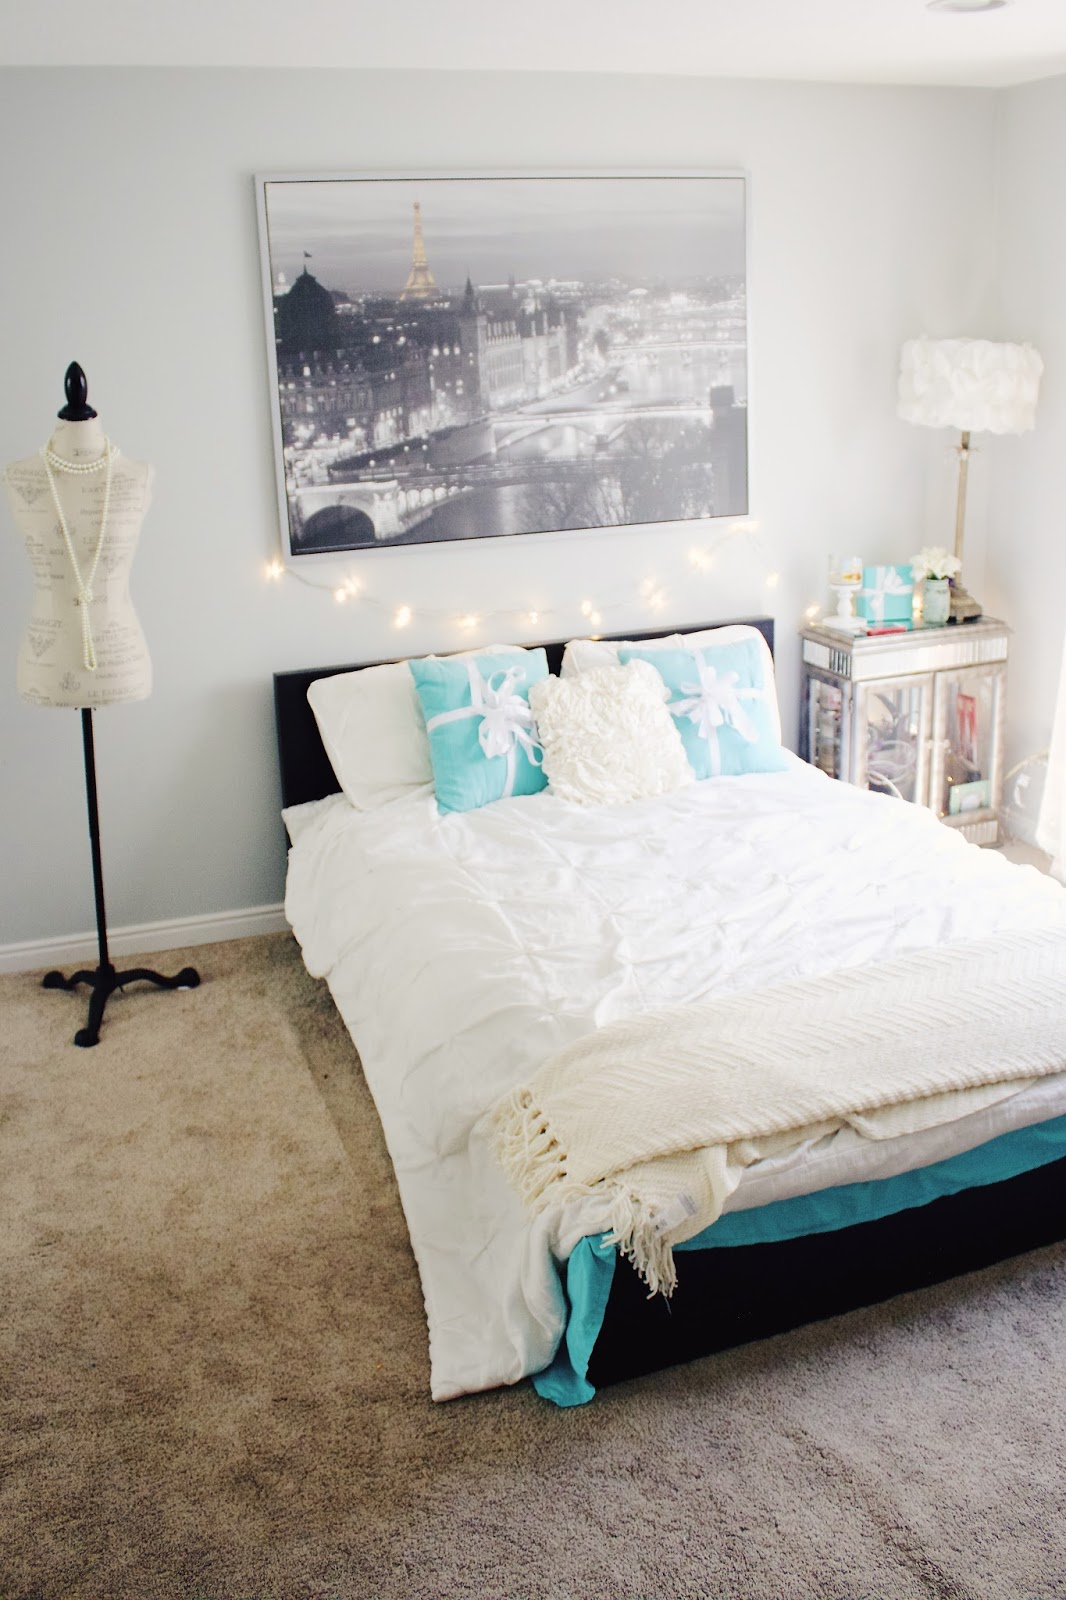 Tiffany & Co Themed Bedroom Tour! - Global Fashion Gal